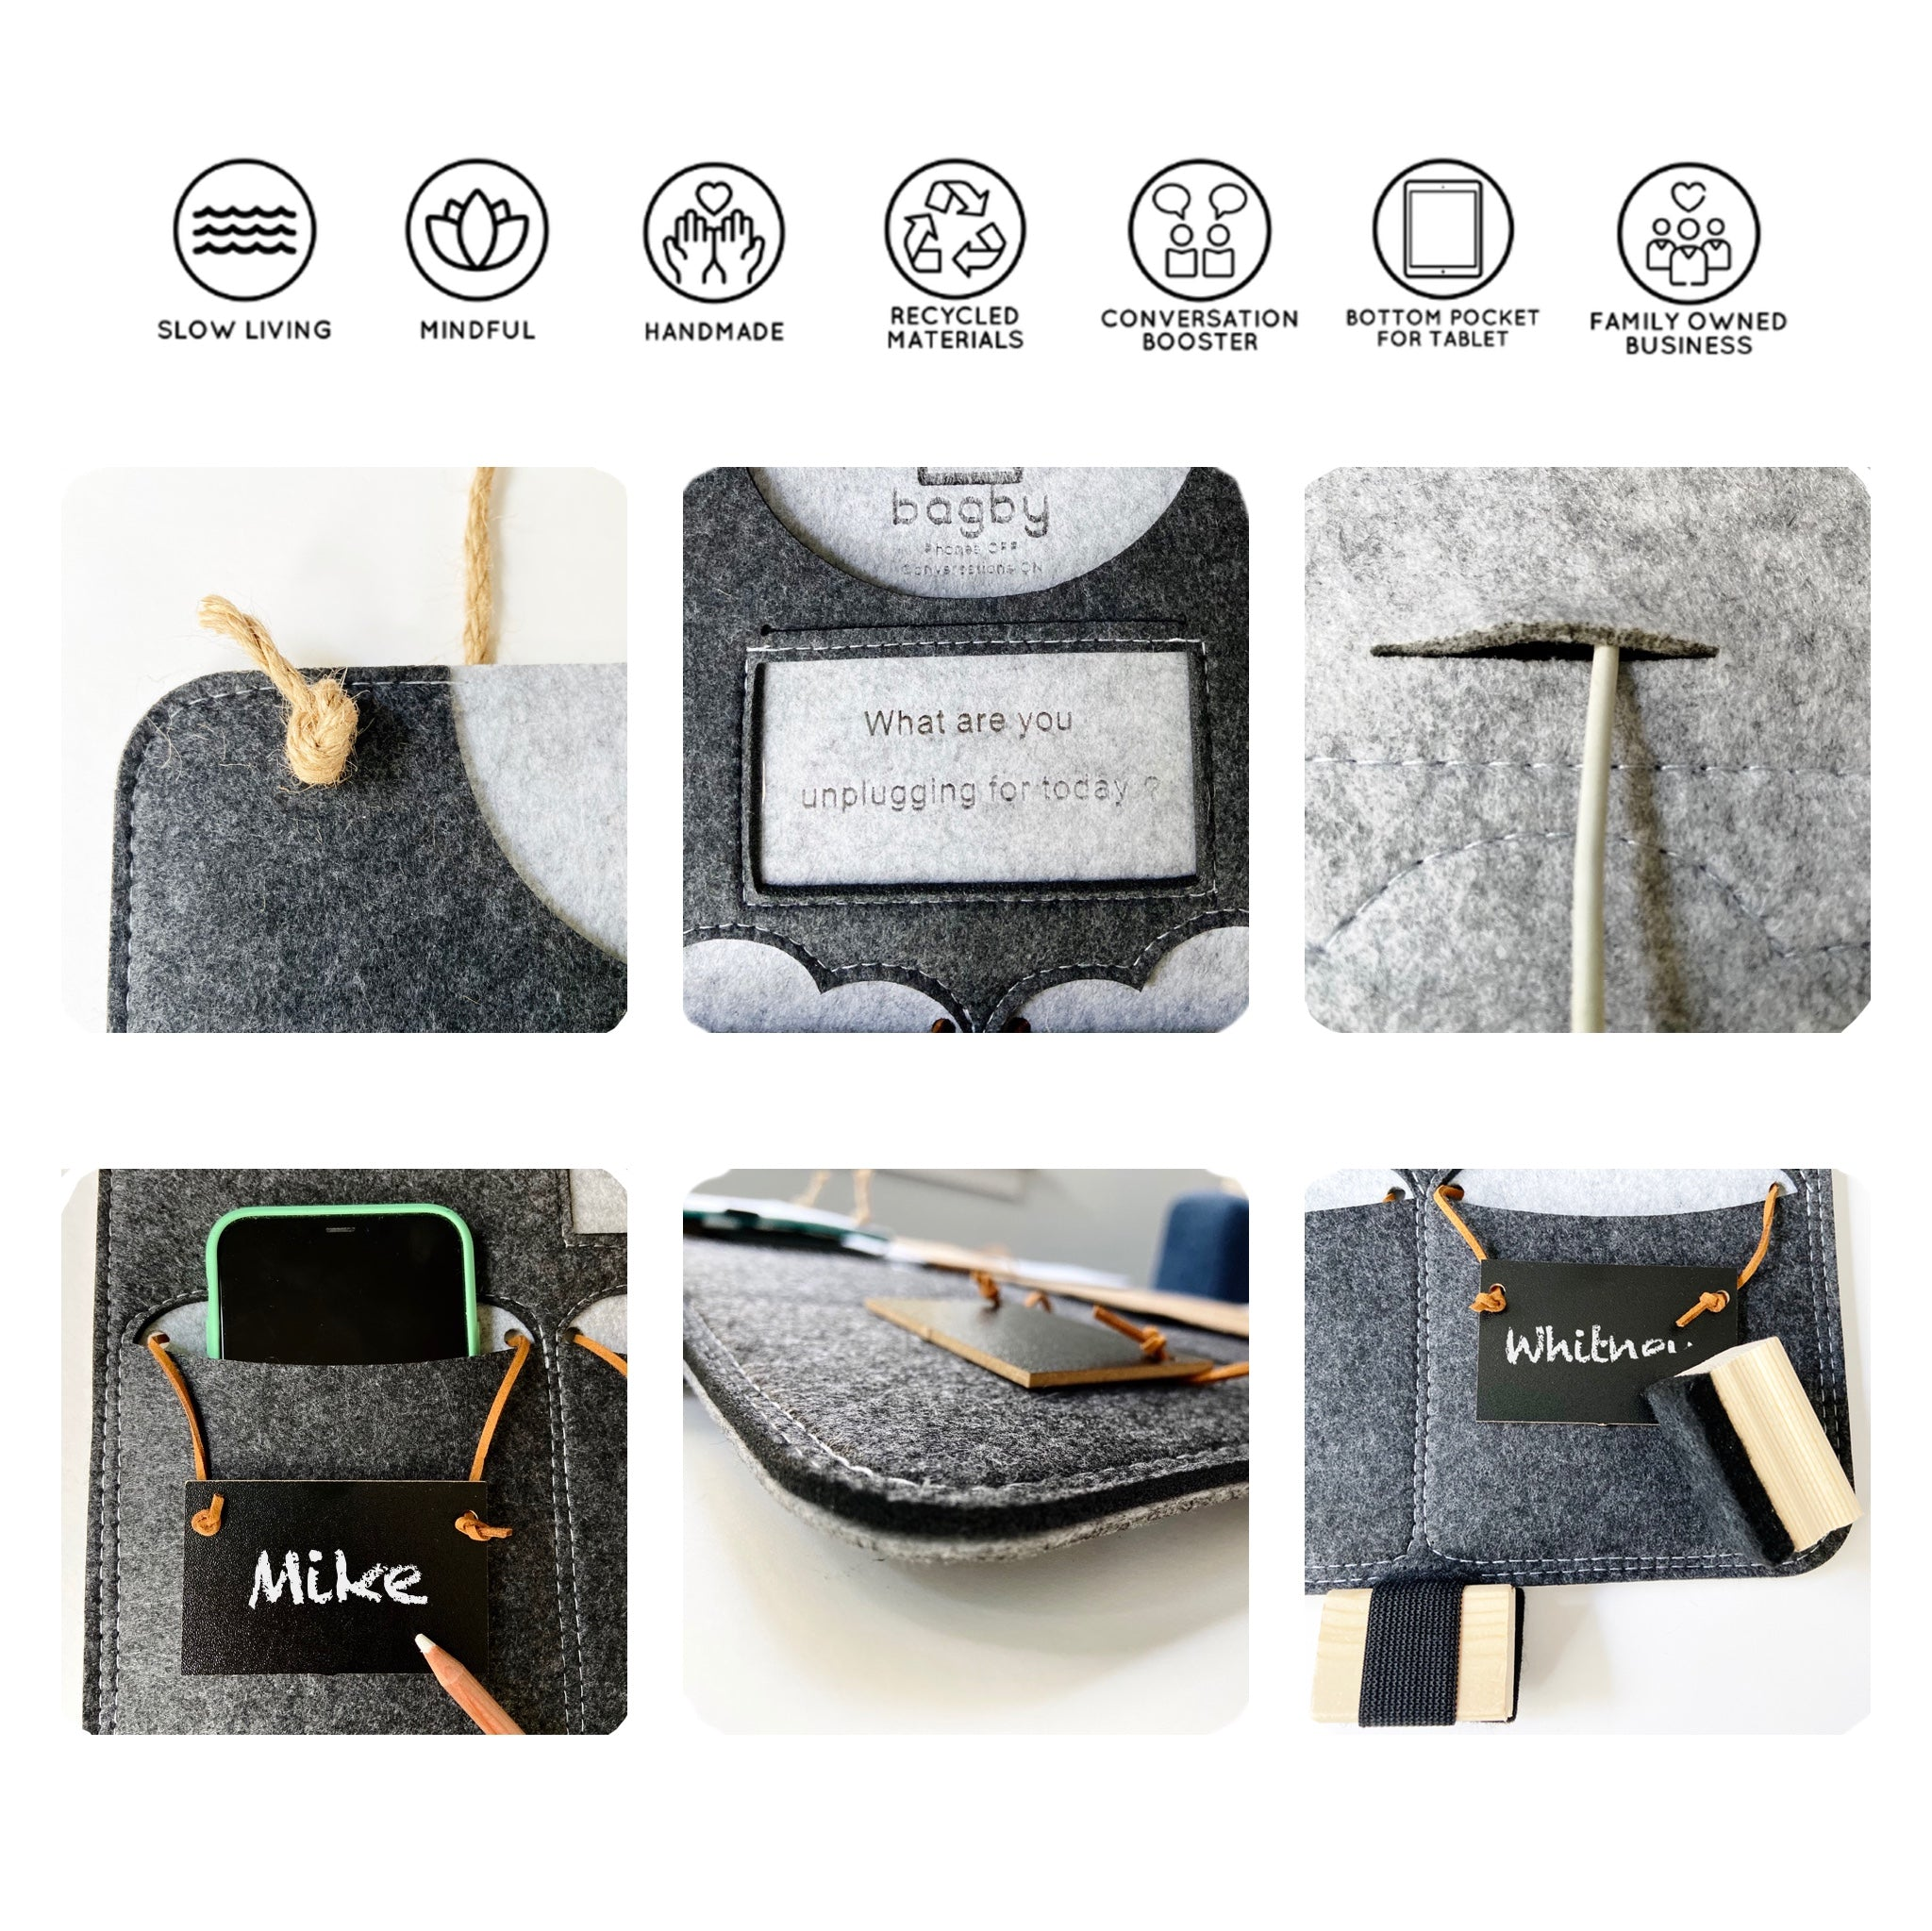 Bagby Social - Mindful Phone / Tablet Holder 6+1 Pockets